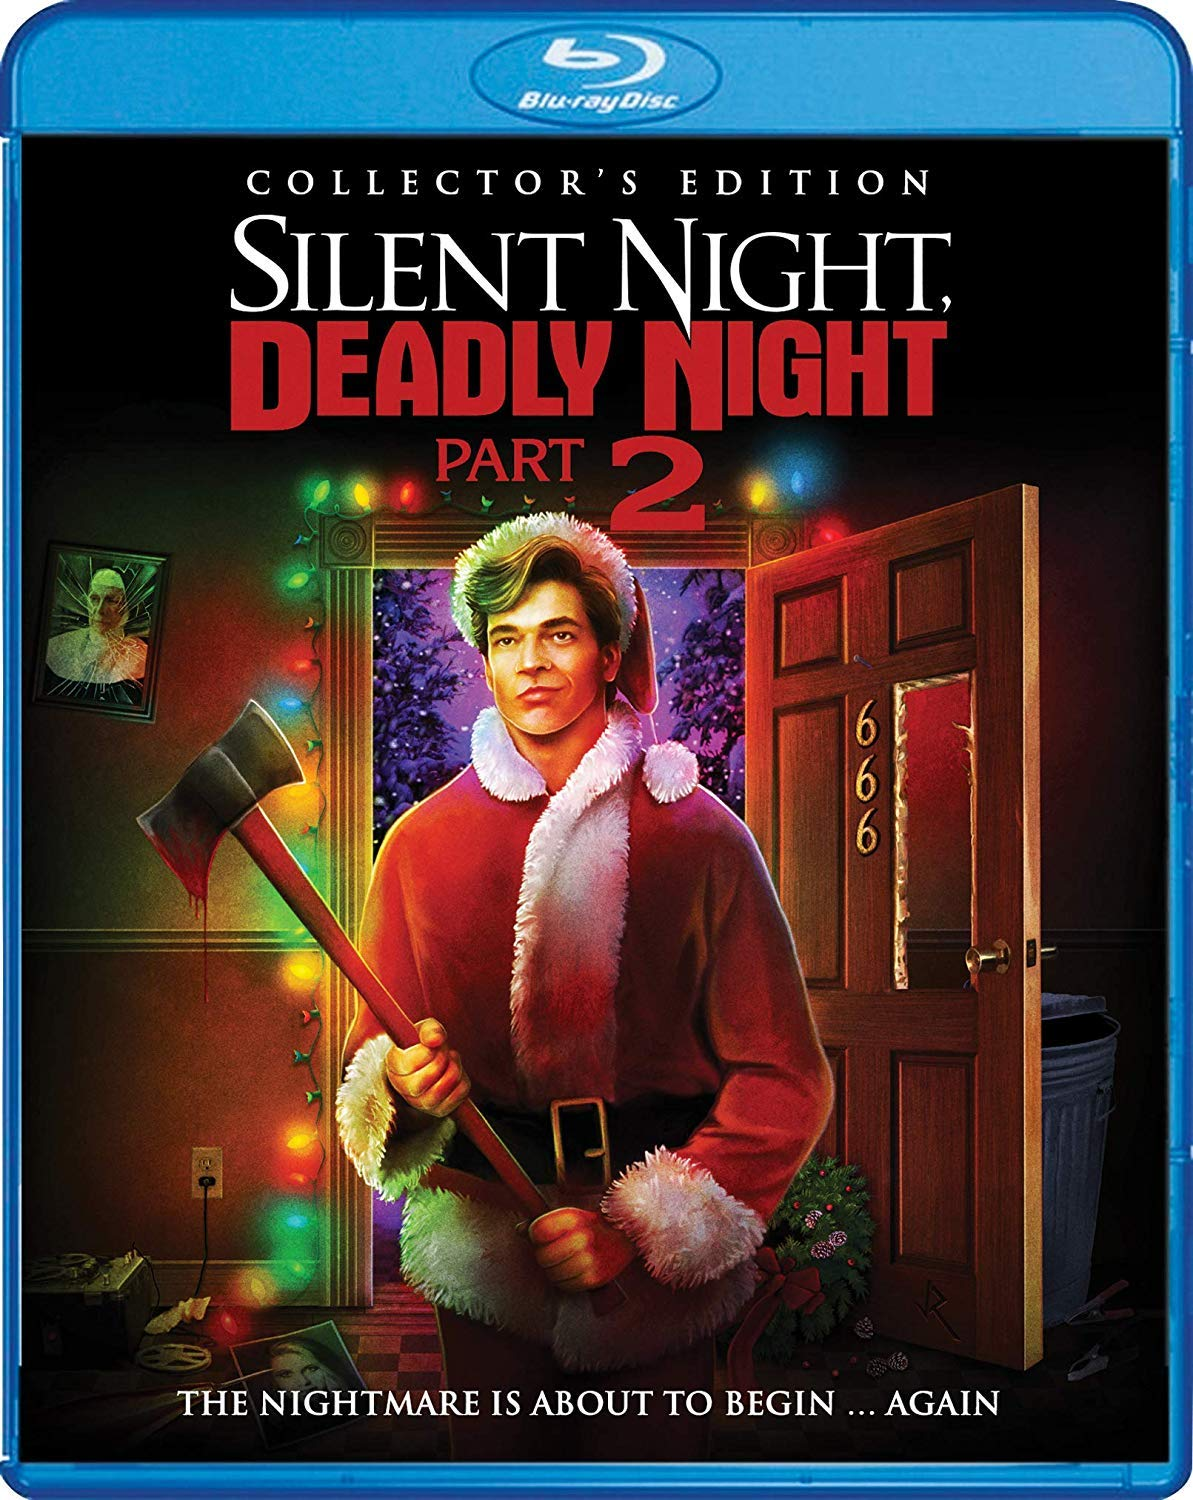 Blu-ray : Silent Night, Deadly Night, Part 2 (Collector's Edition, Widescreen)